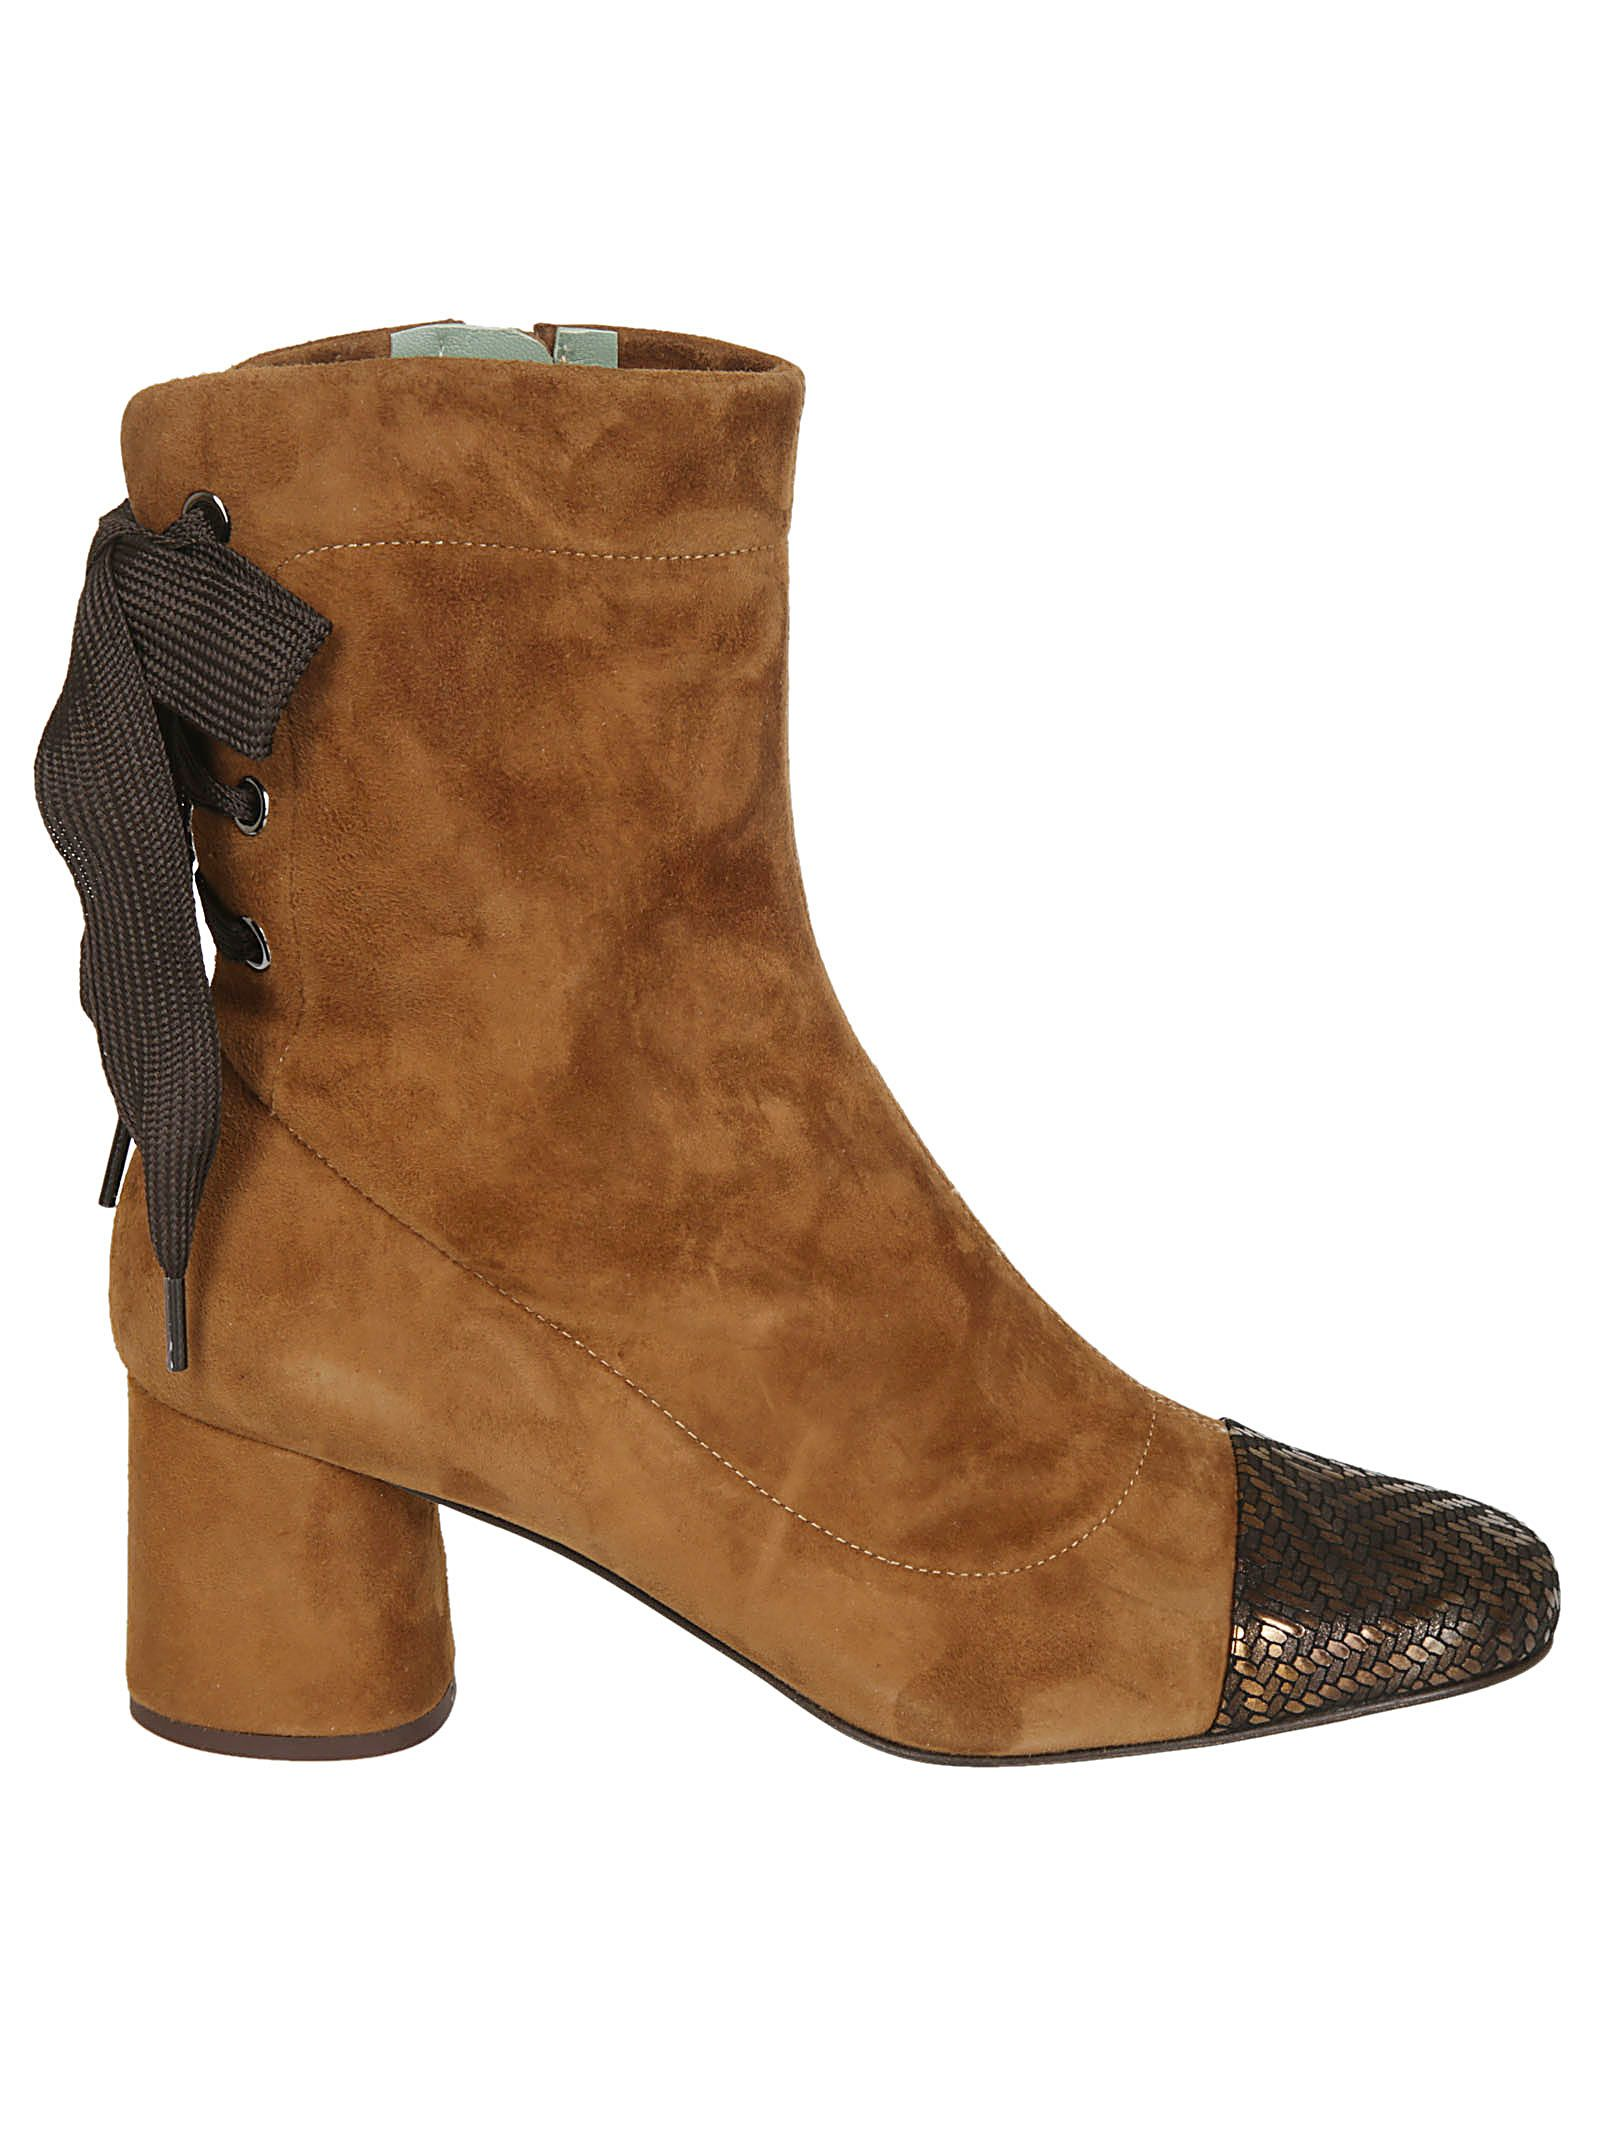 PAOLA D'ARCANO Paola D'Arcano Side Zip Ankle Boots in Cuoio